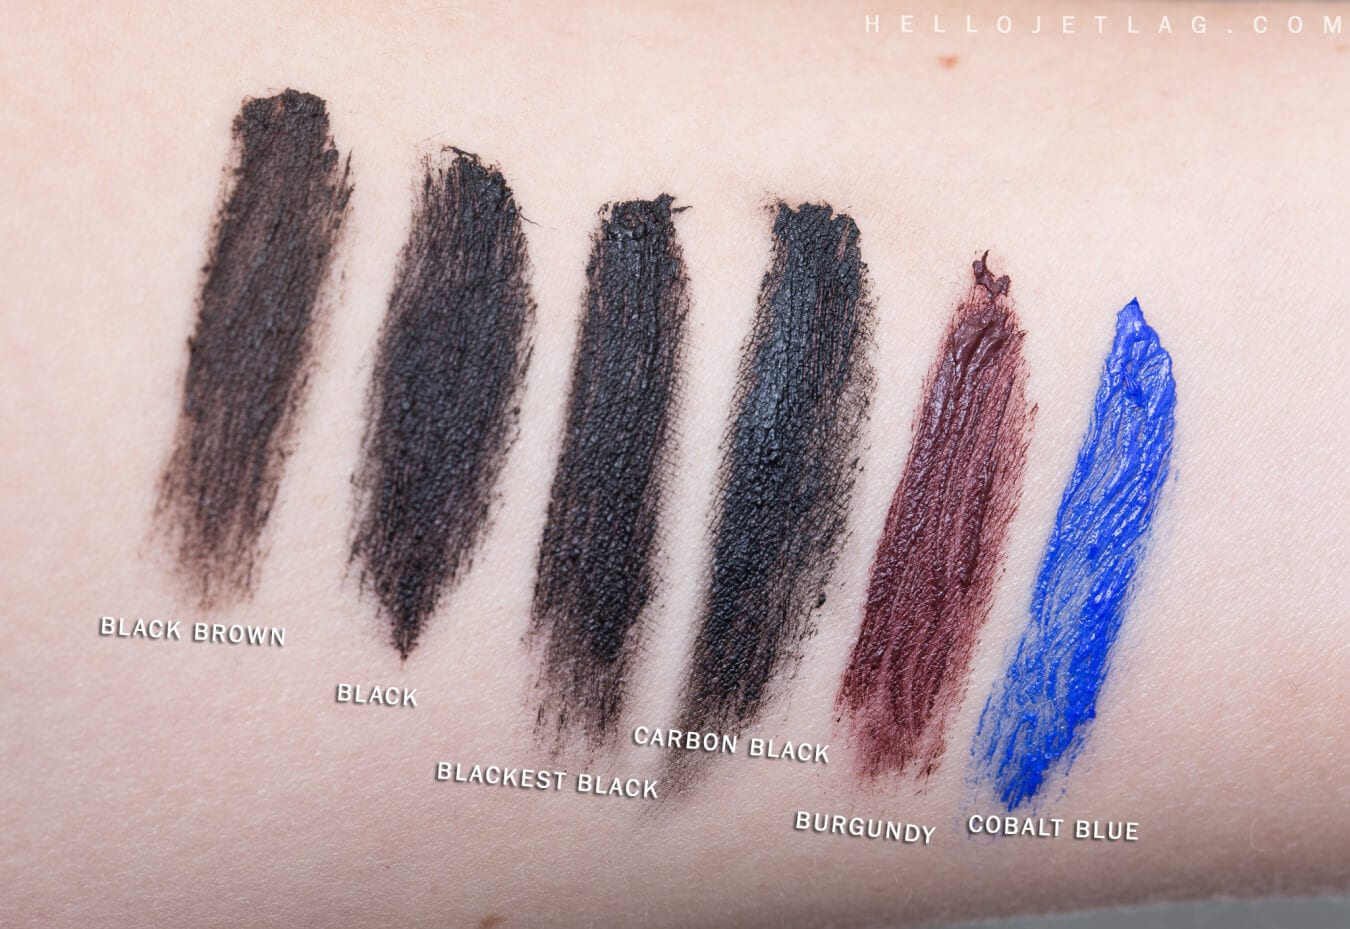 L'Oreal Voluminous Mascara Swatches